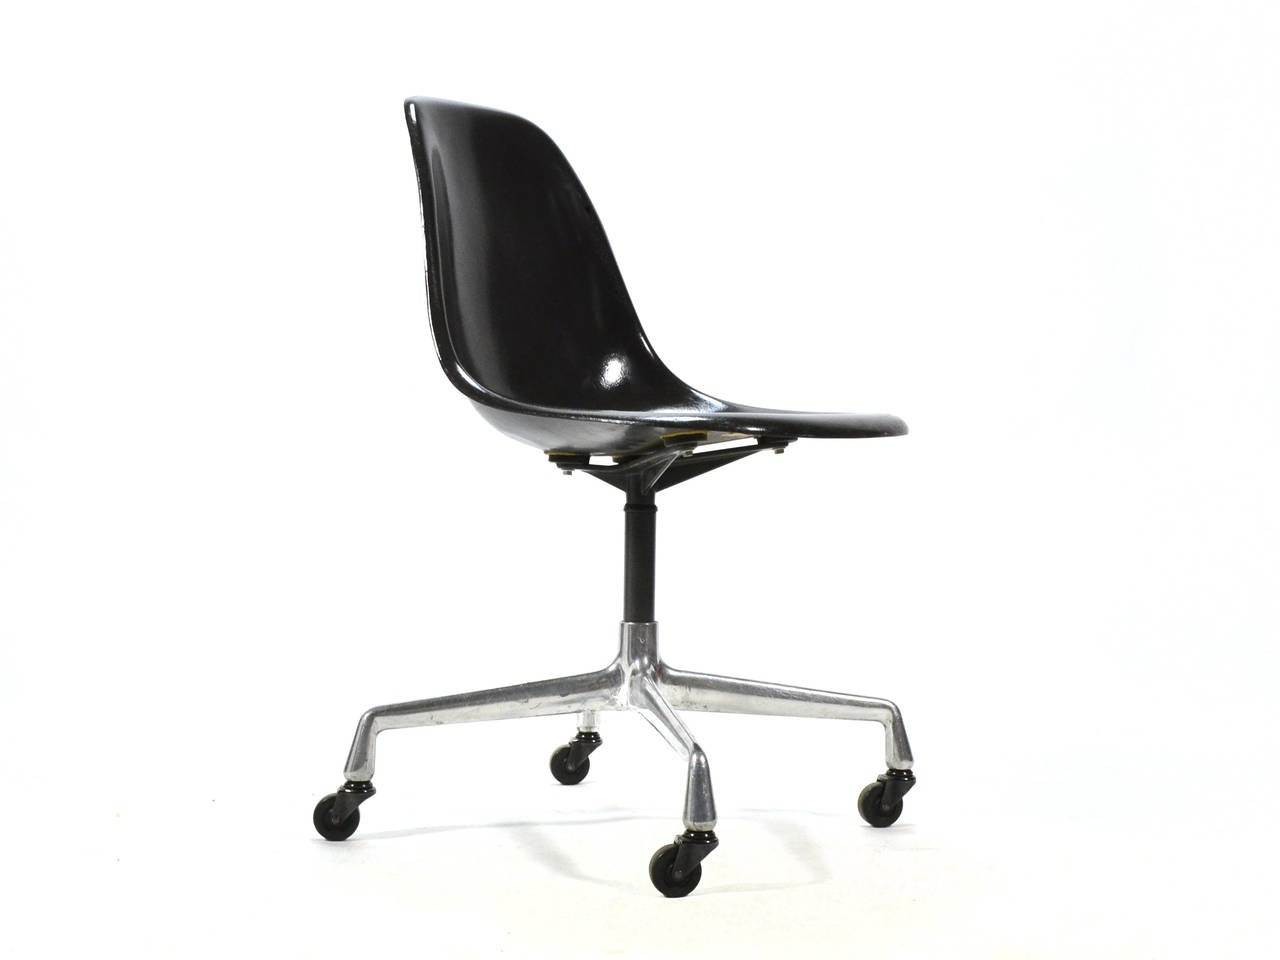 Eames PSC Fiberglass Side Chairs By Herman Miller Set Of 12 Or More For Sale